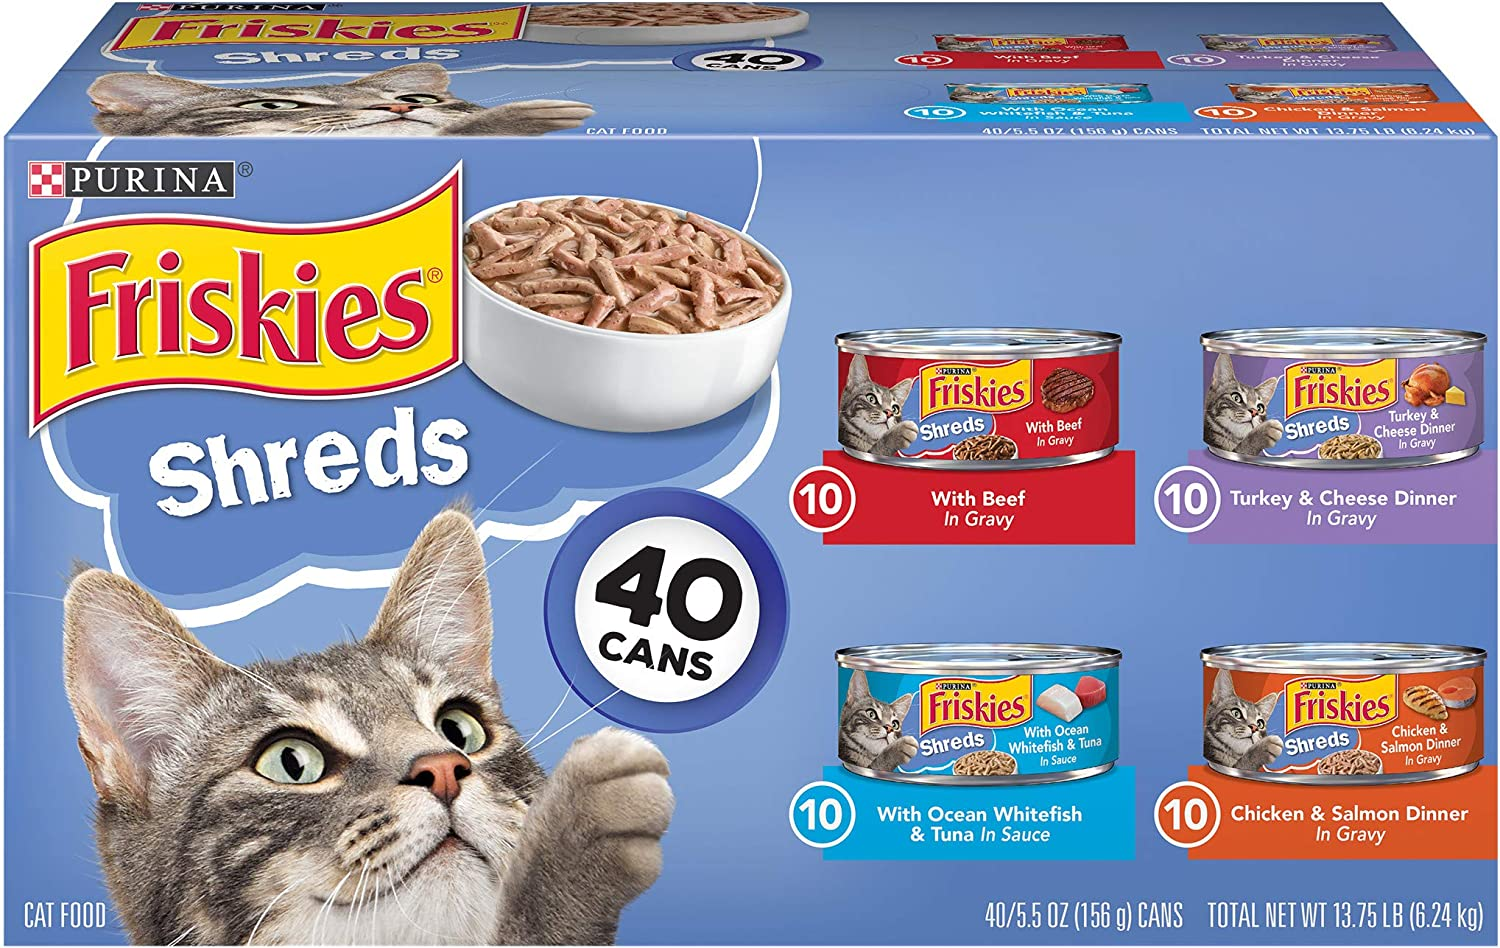 Purina Friskies Variety Pack Wet Cat Food Gravy, Shreds Beef, Turkey, Whitefish, and Chicken & Salmon - (40) 5.5 oz. Cans